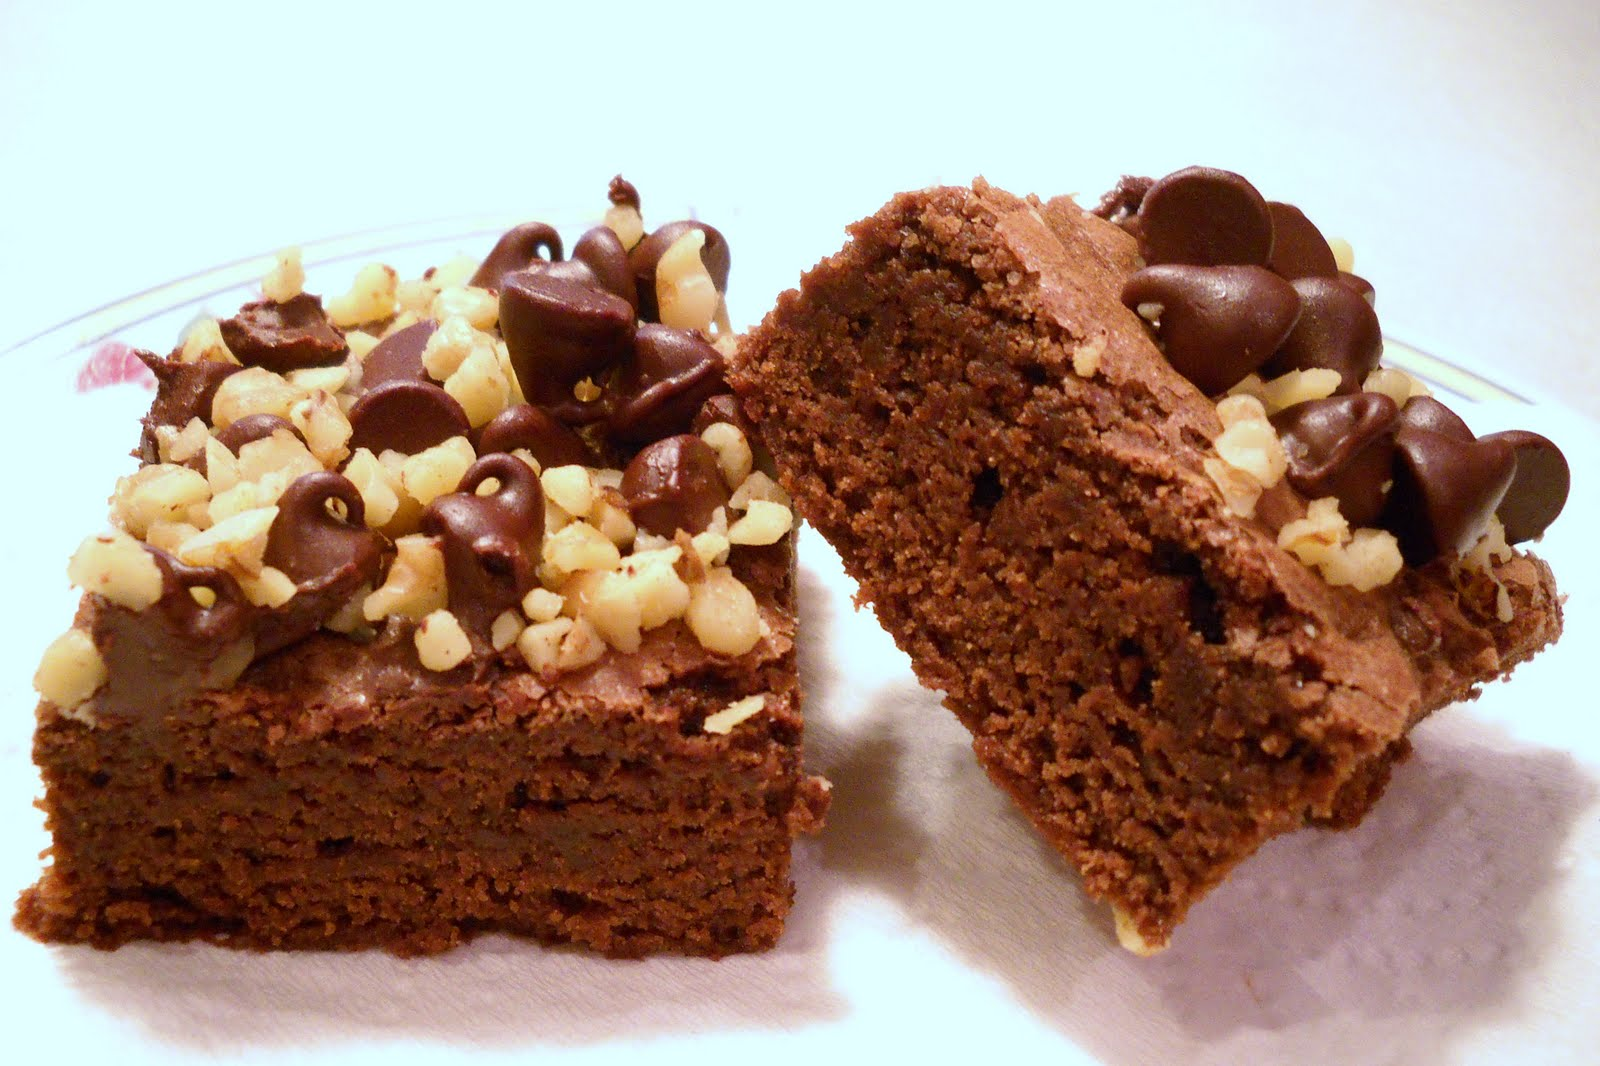 The Toll House Experiment: Craggy-Topped Fudge Brownies